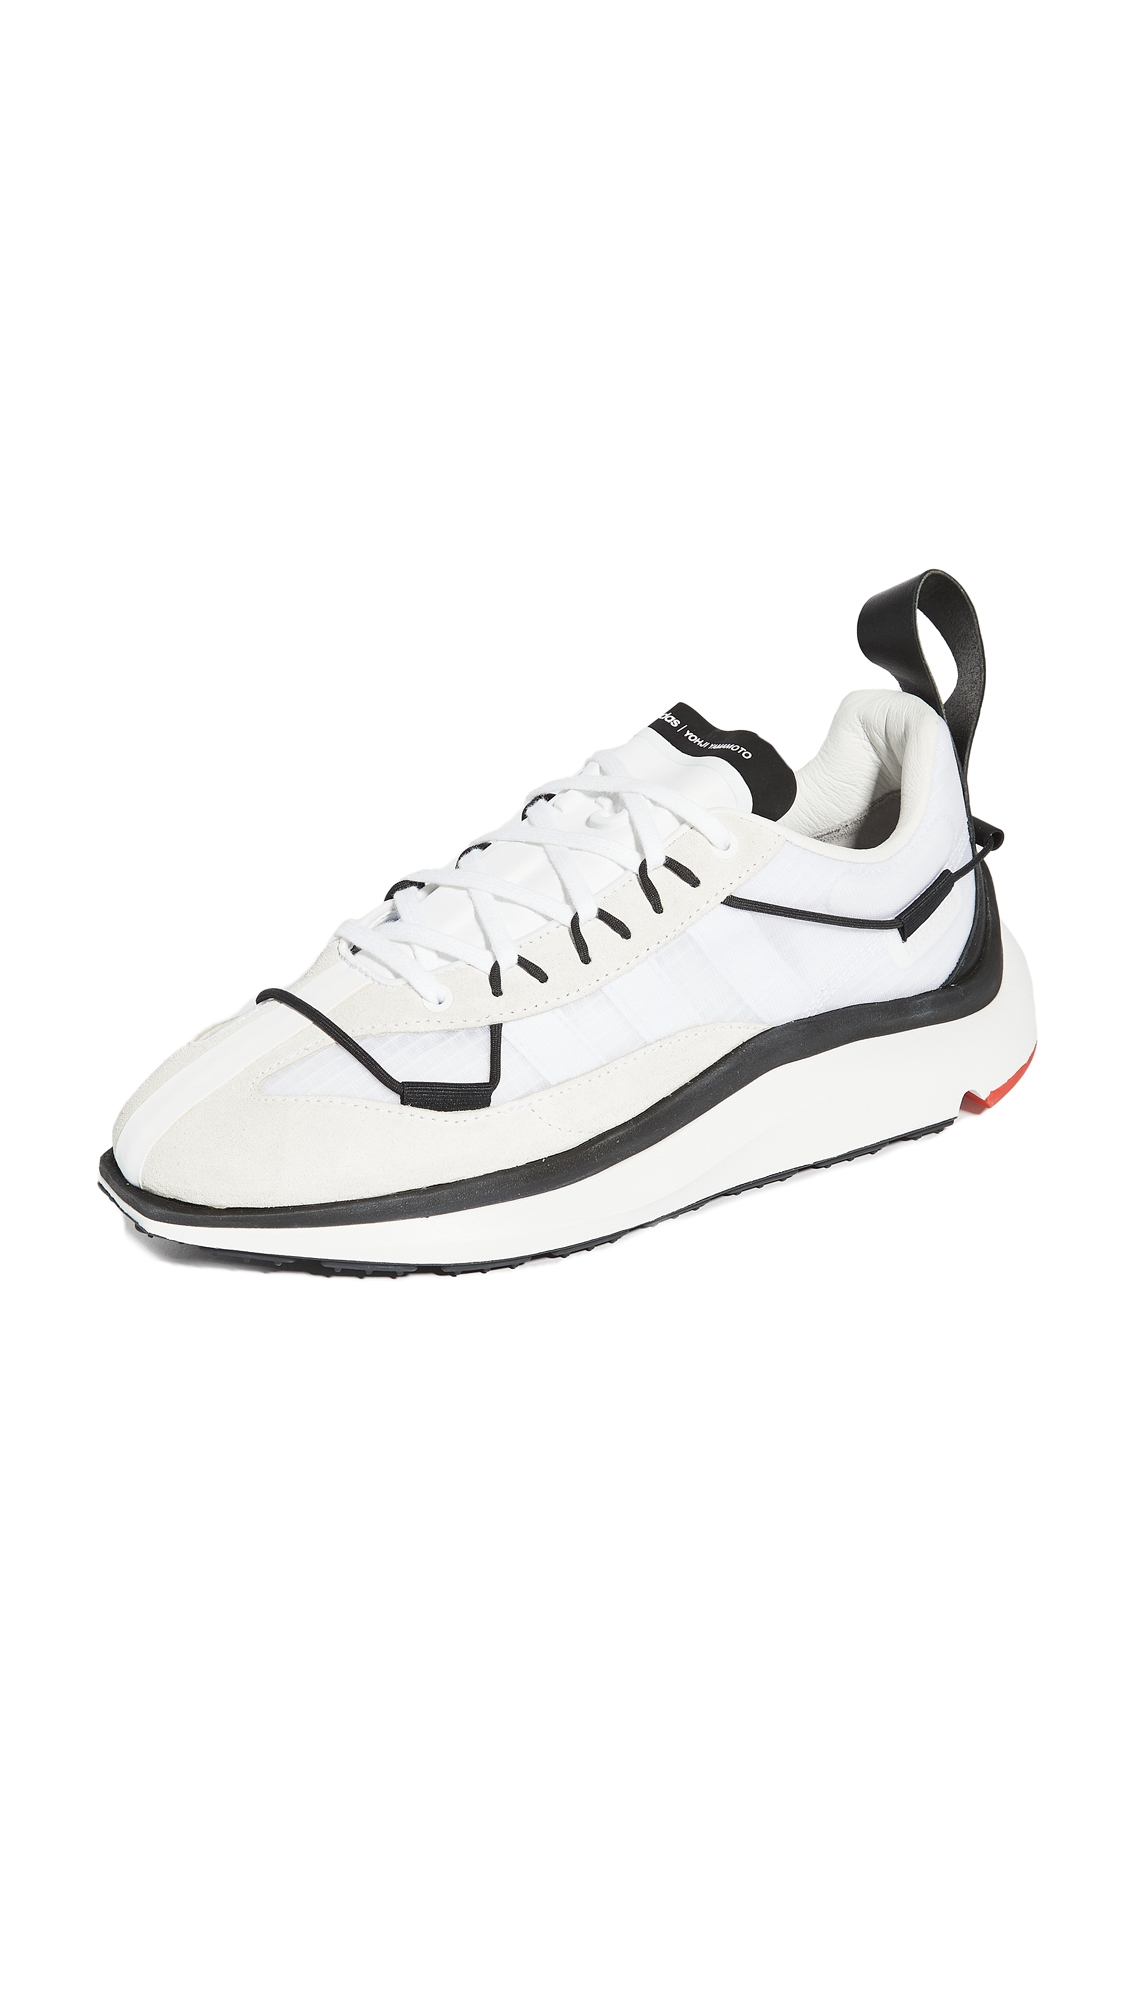 Y-3 Y-3 Shiku Run Sneakers